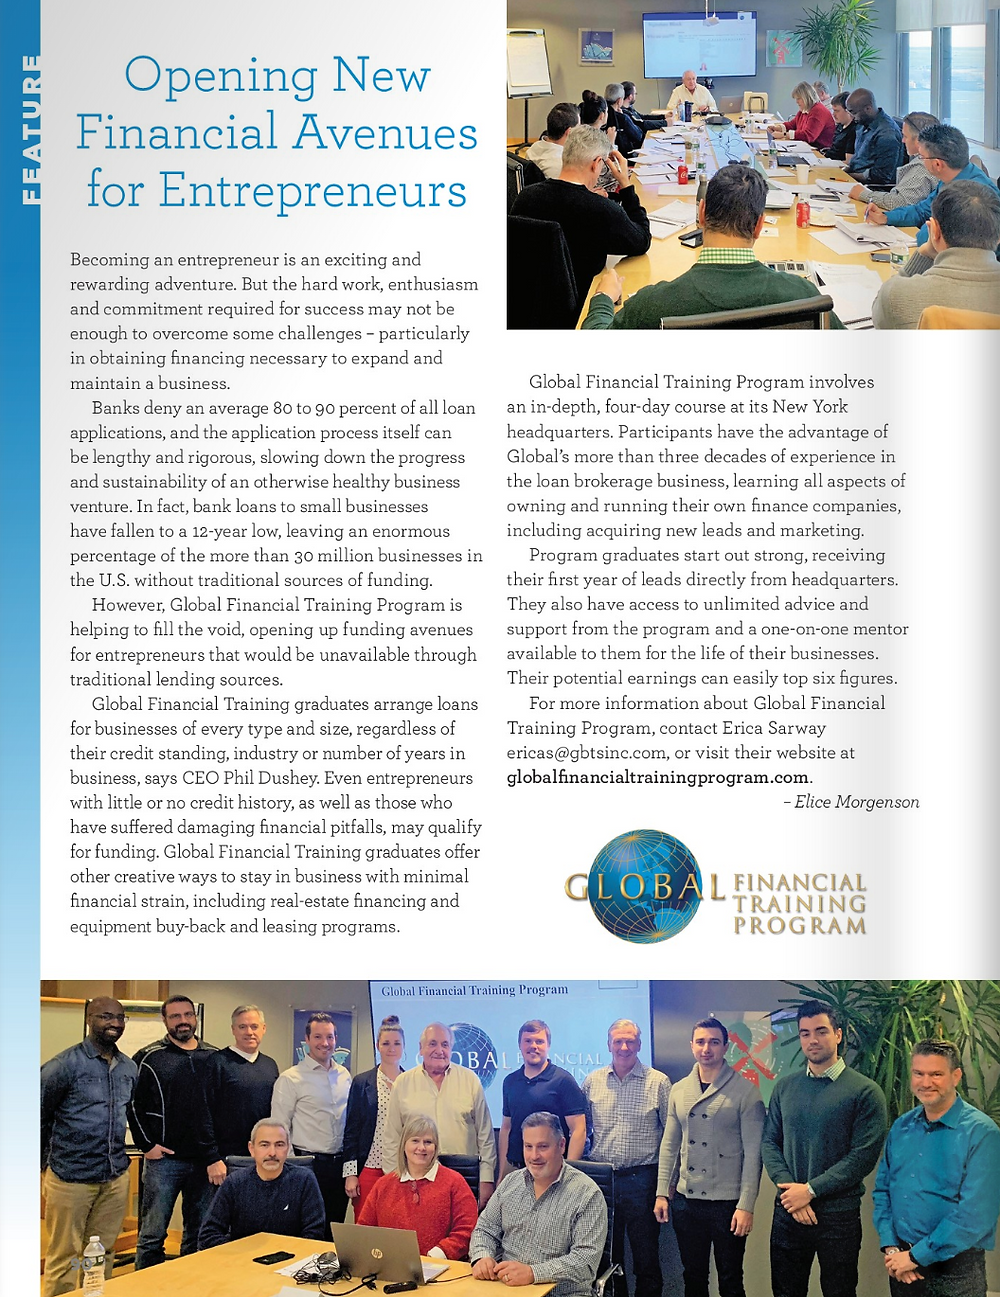 Opening New Financial Avenues for Entrepreneurs | Franchise Dictionary Magazine